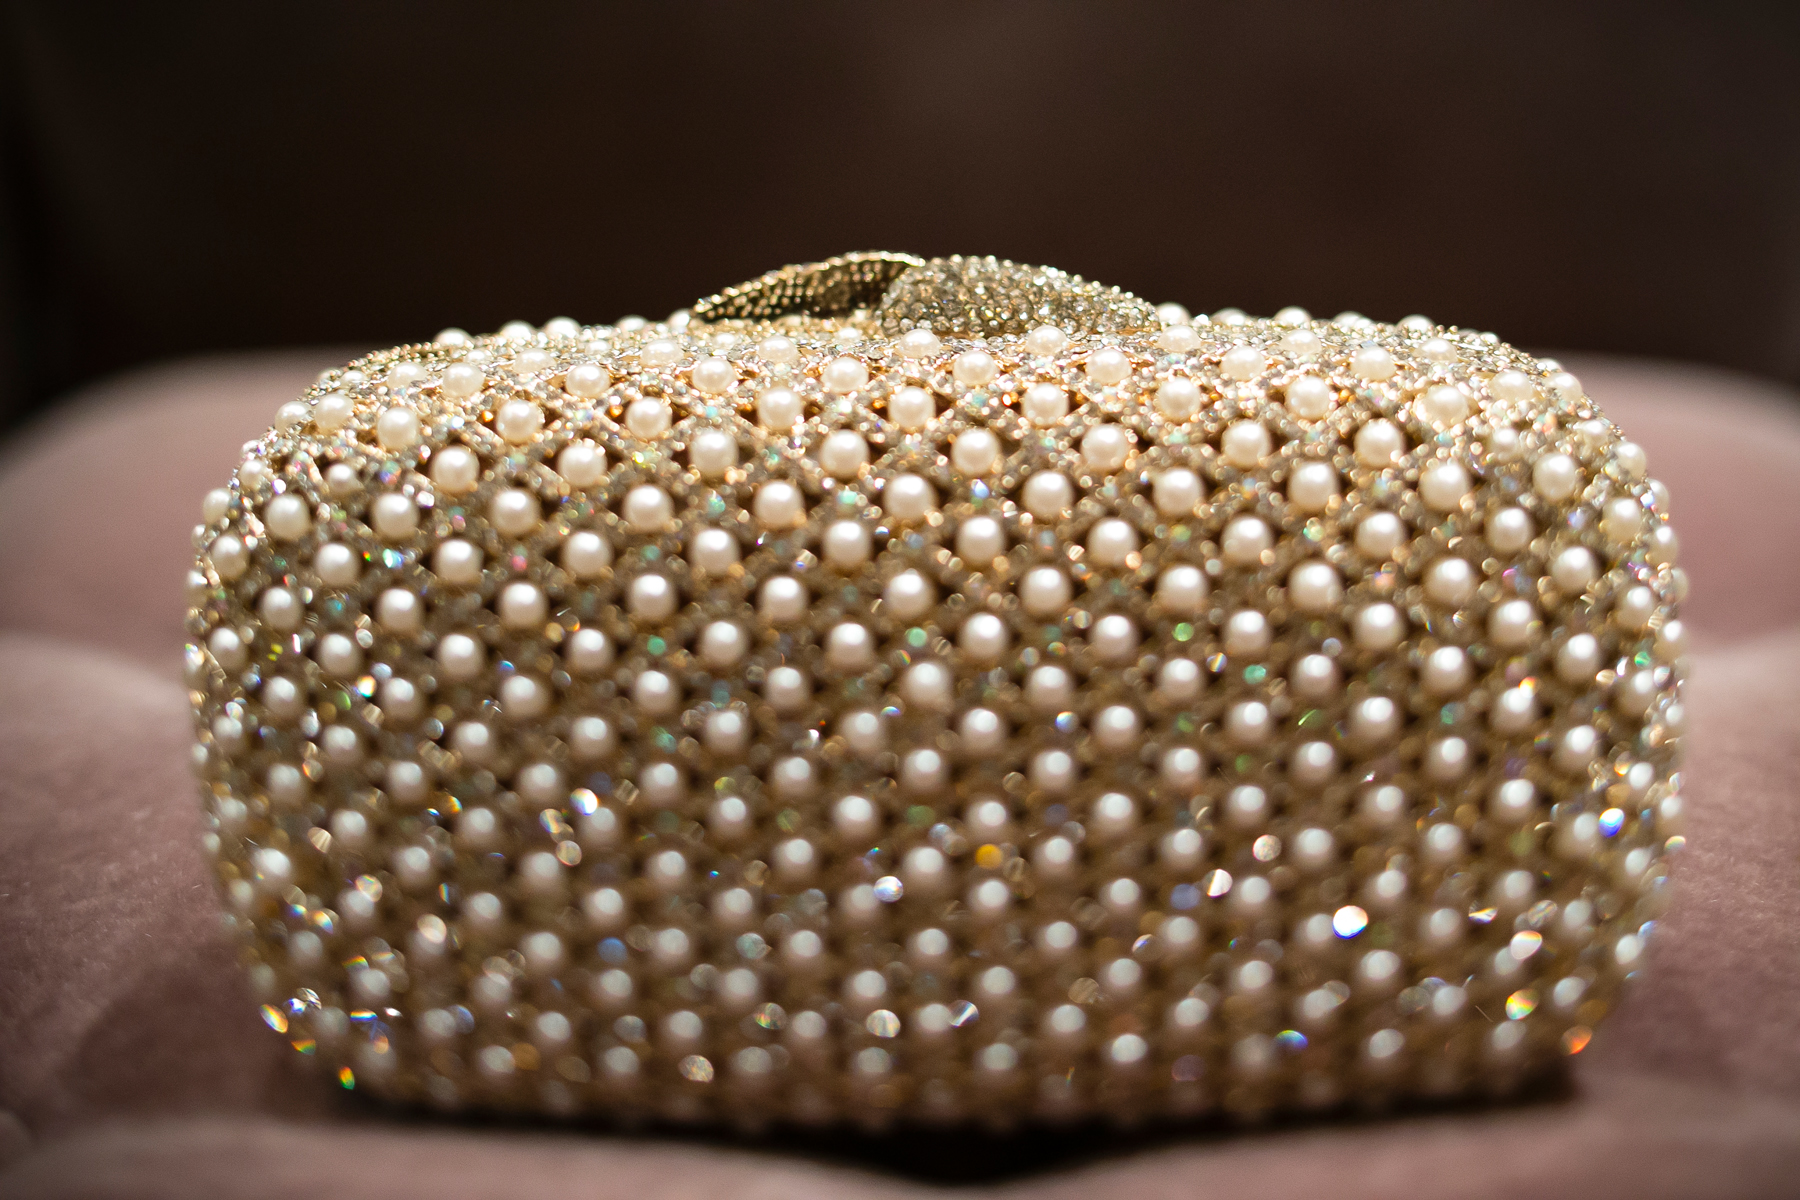 Who knew pearls and gold looked so good together?!?!  Bag Purchased at  Nordstrom .  Wedding Venue:  Bellagio Las Vegas.    Photo by  www.ronmiller.com .  Las Vegas Wedding Planner:  Andrea Eppolito Events